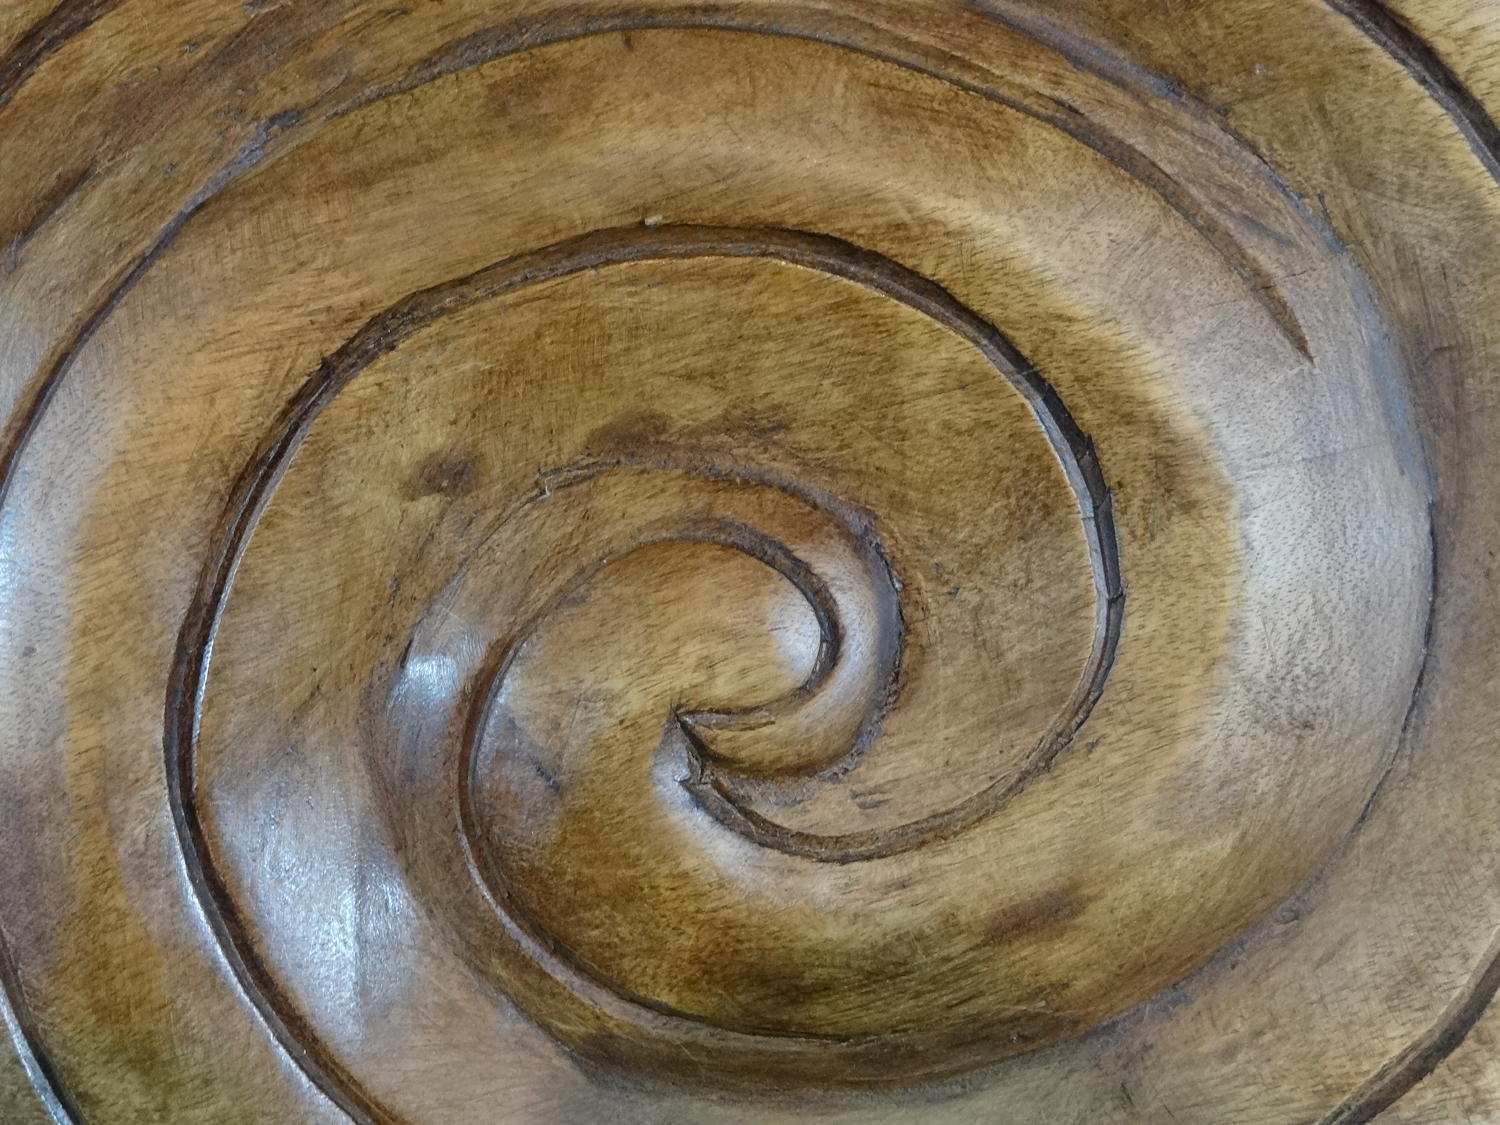 Wooden ammonite